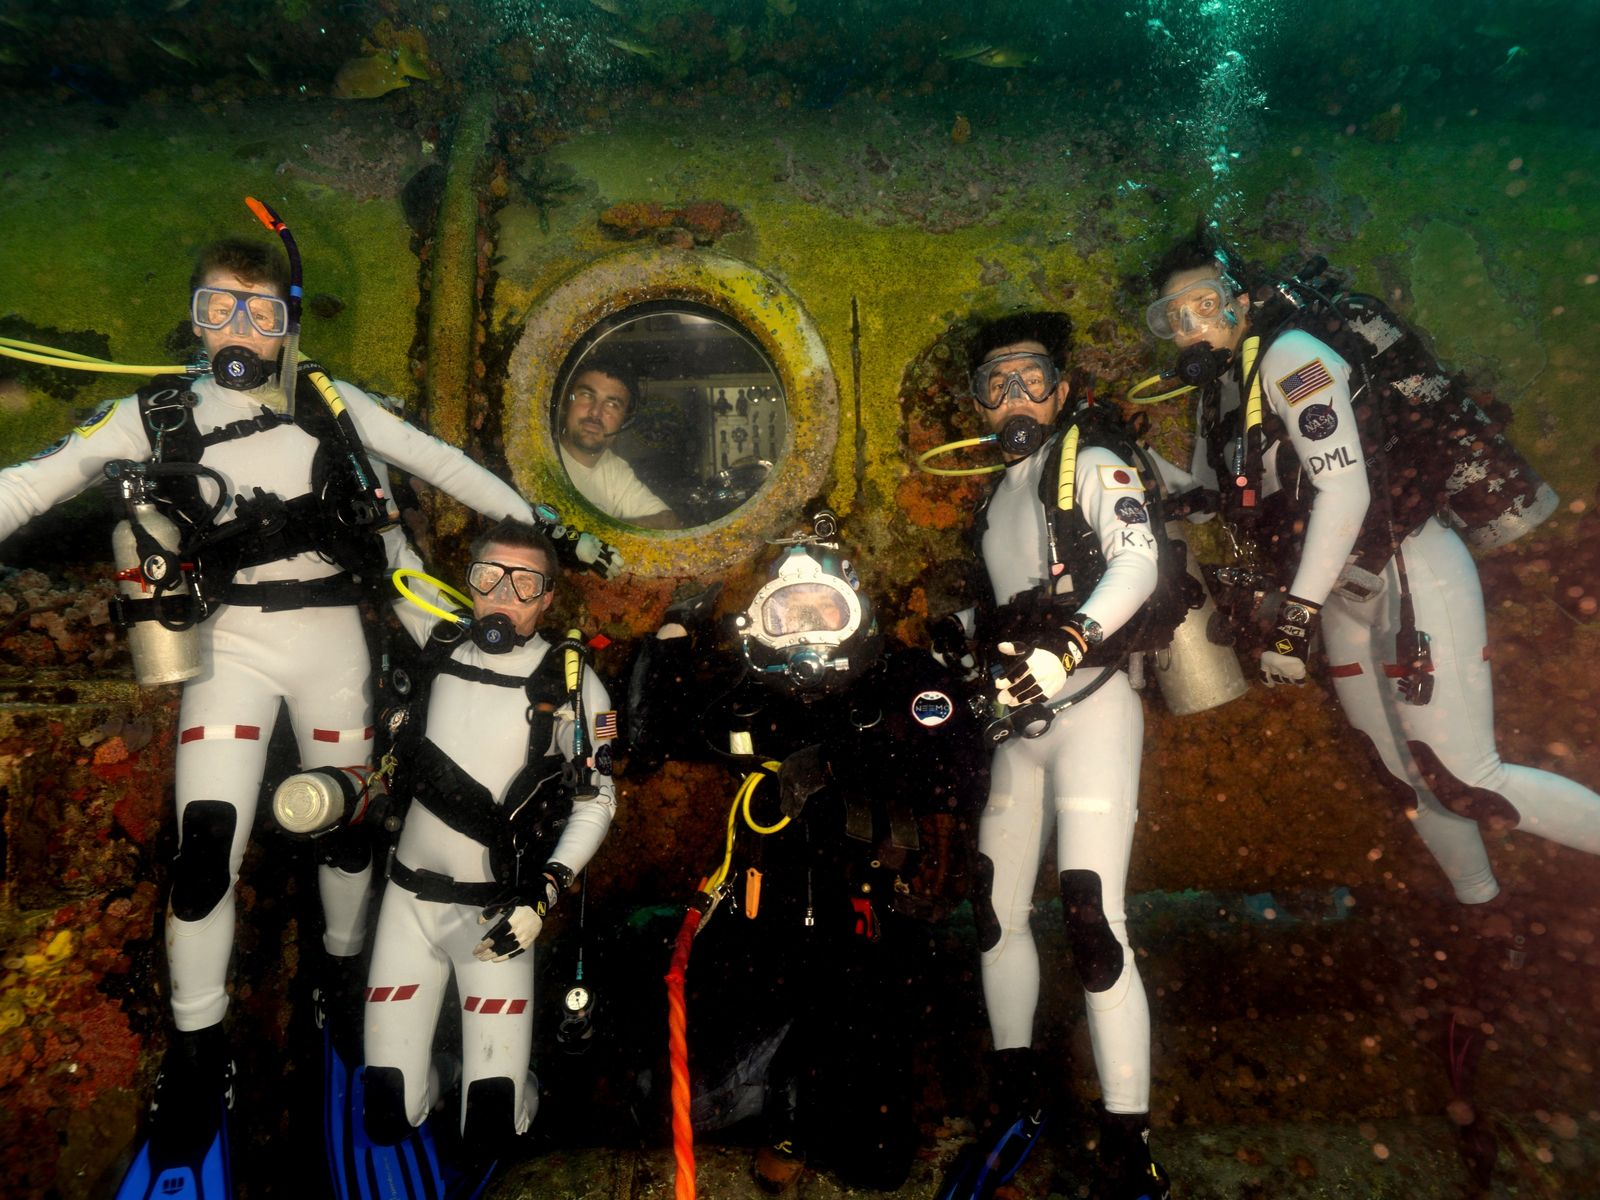 Tim Peake (left) trains underwater with fellow astronauts at the Aquarius Reef Base.